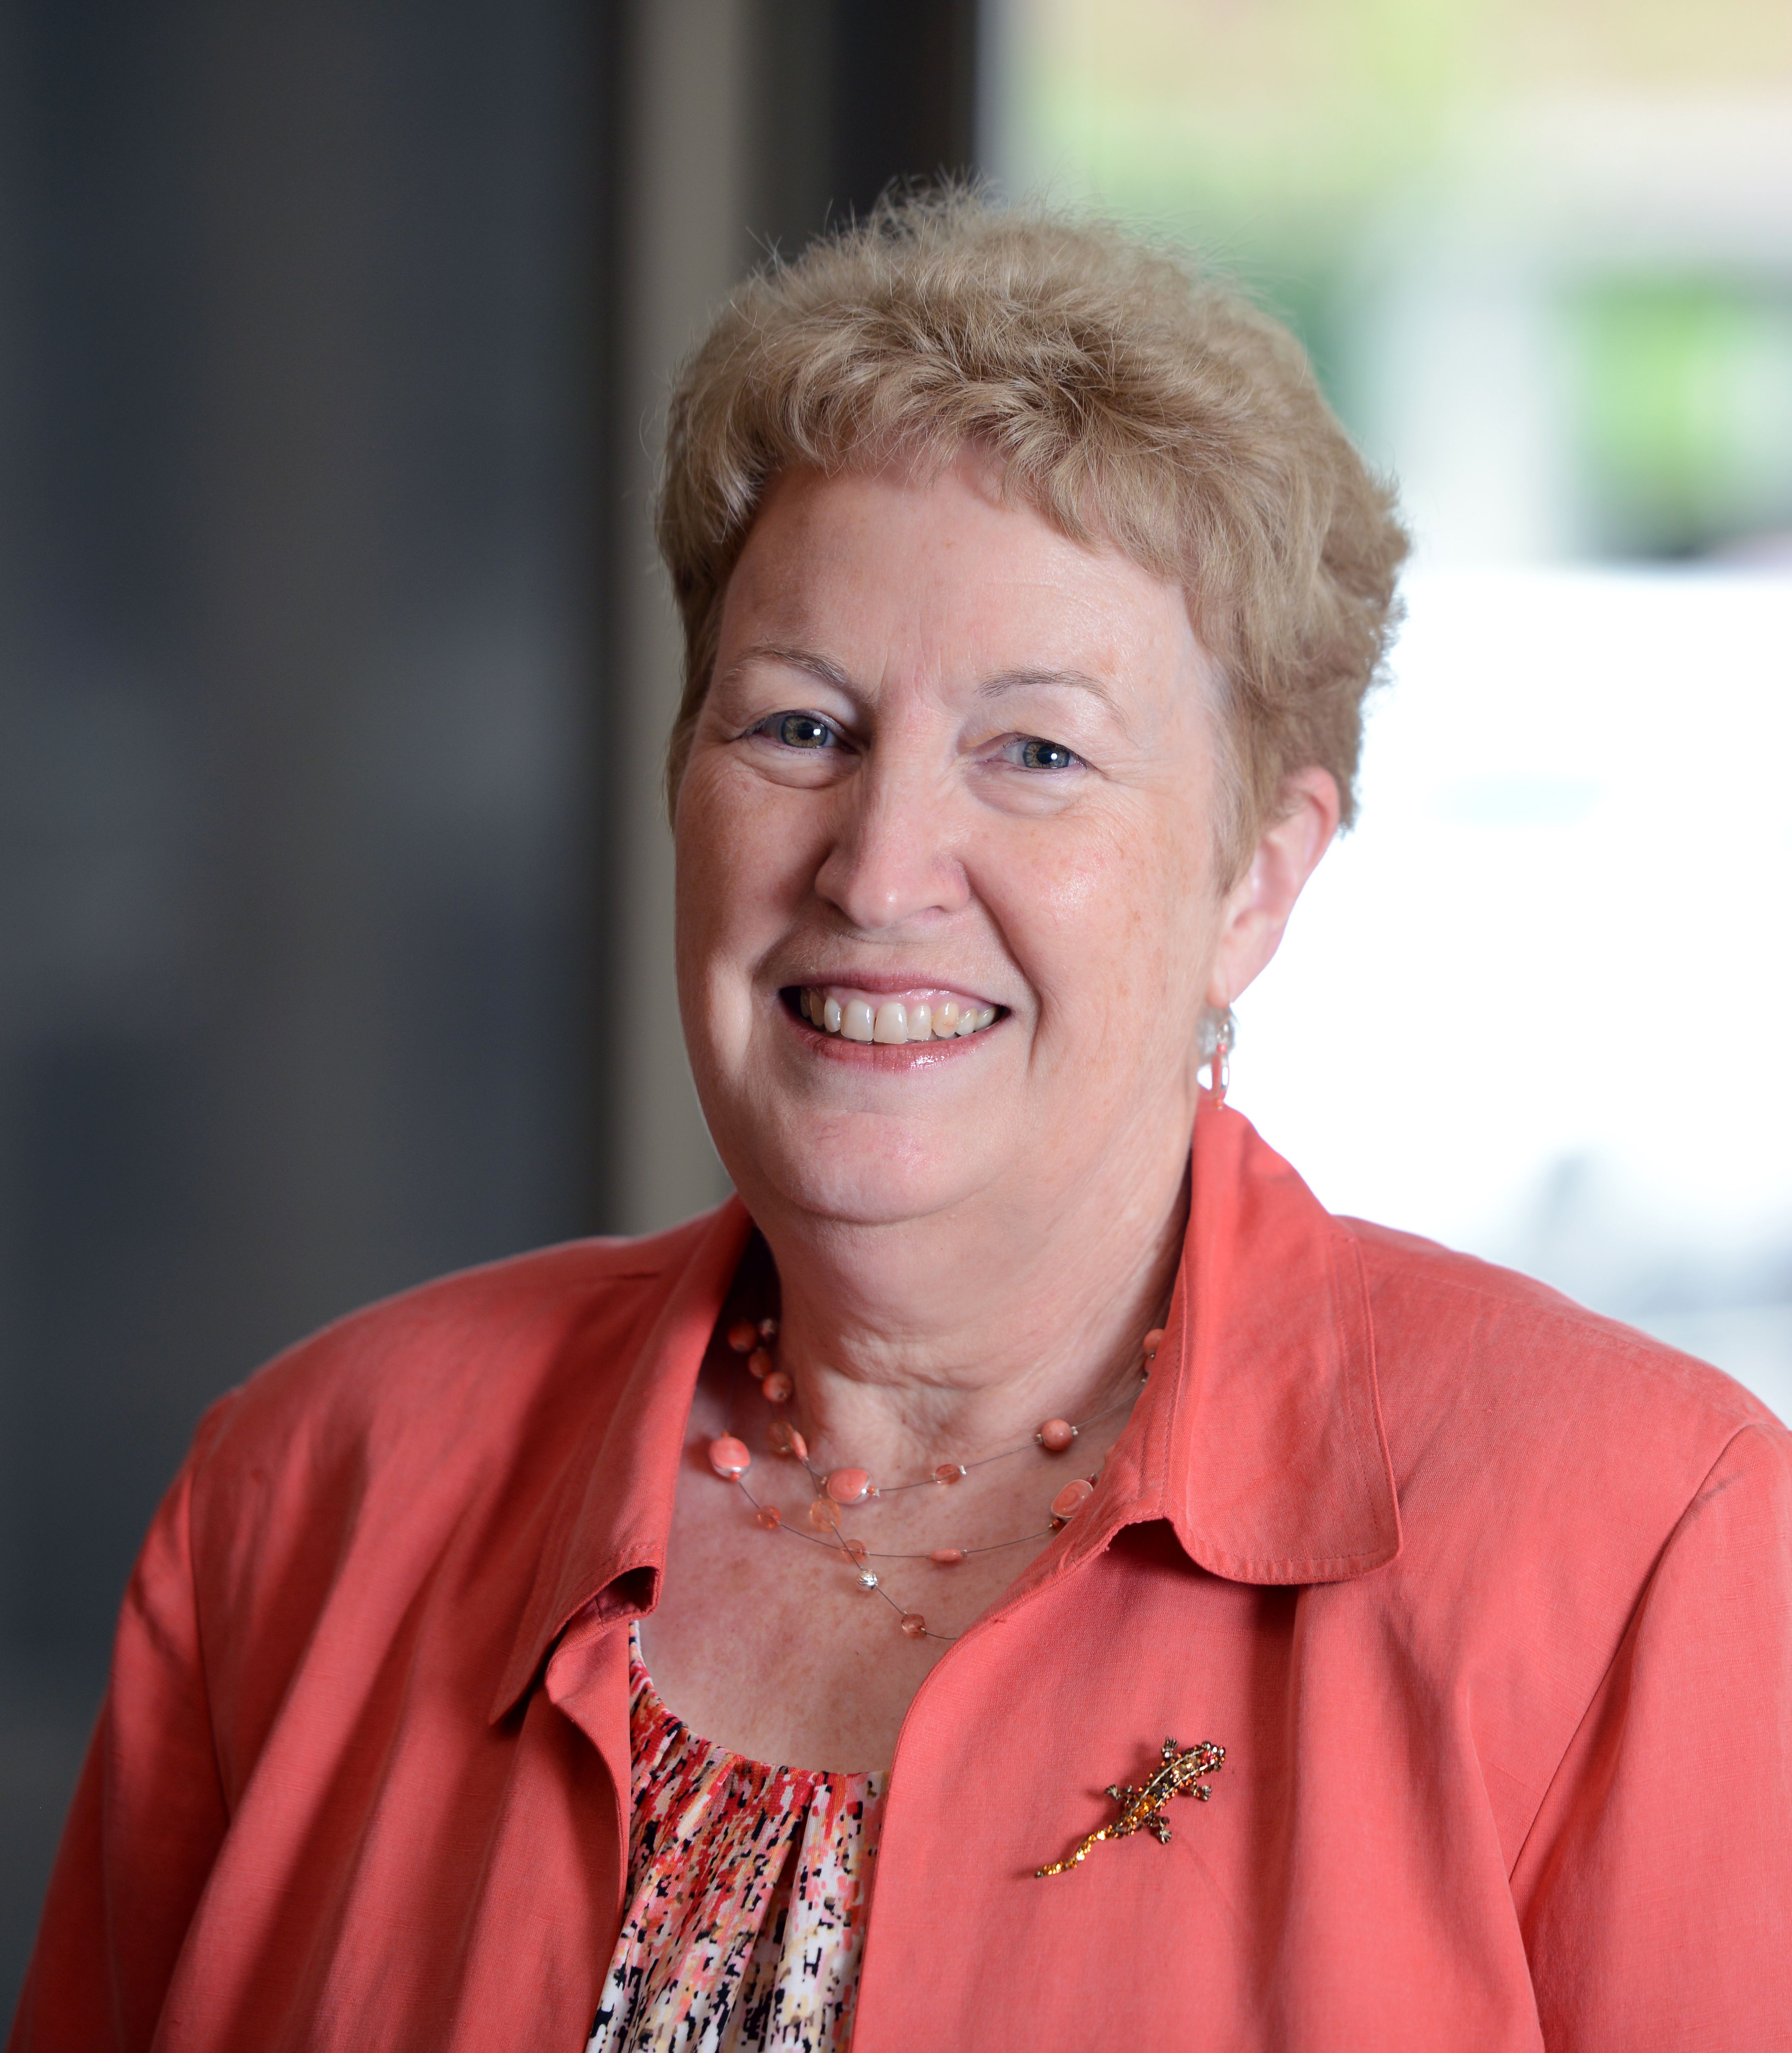 Kathy Gubser is the VP of Market Human Resources for Mercy